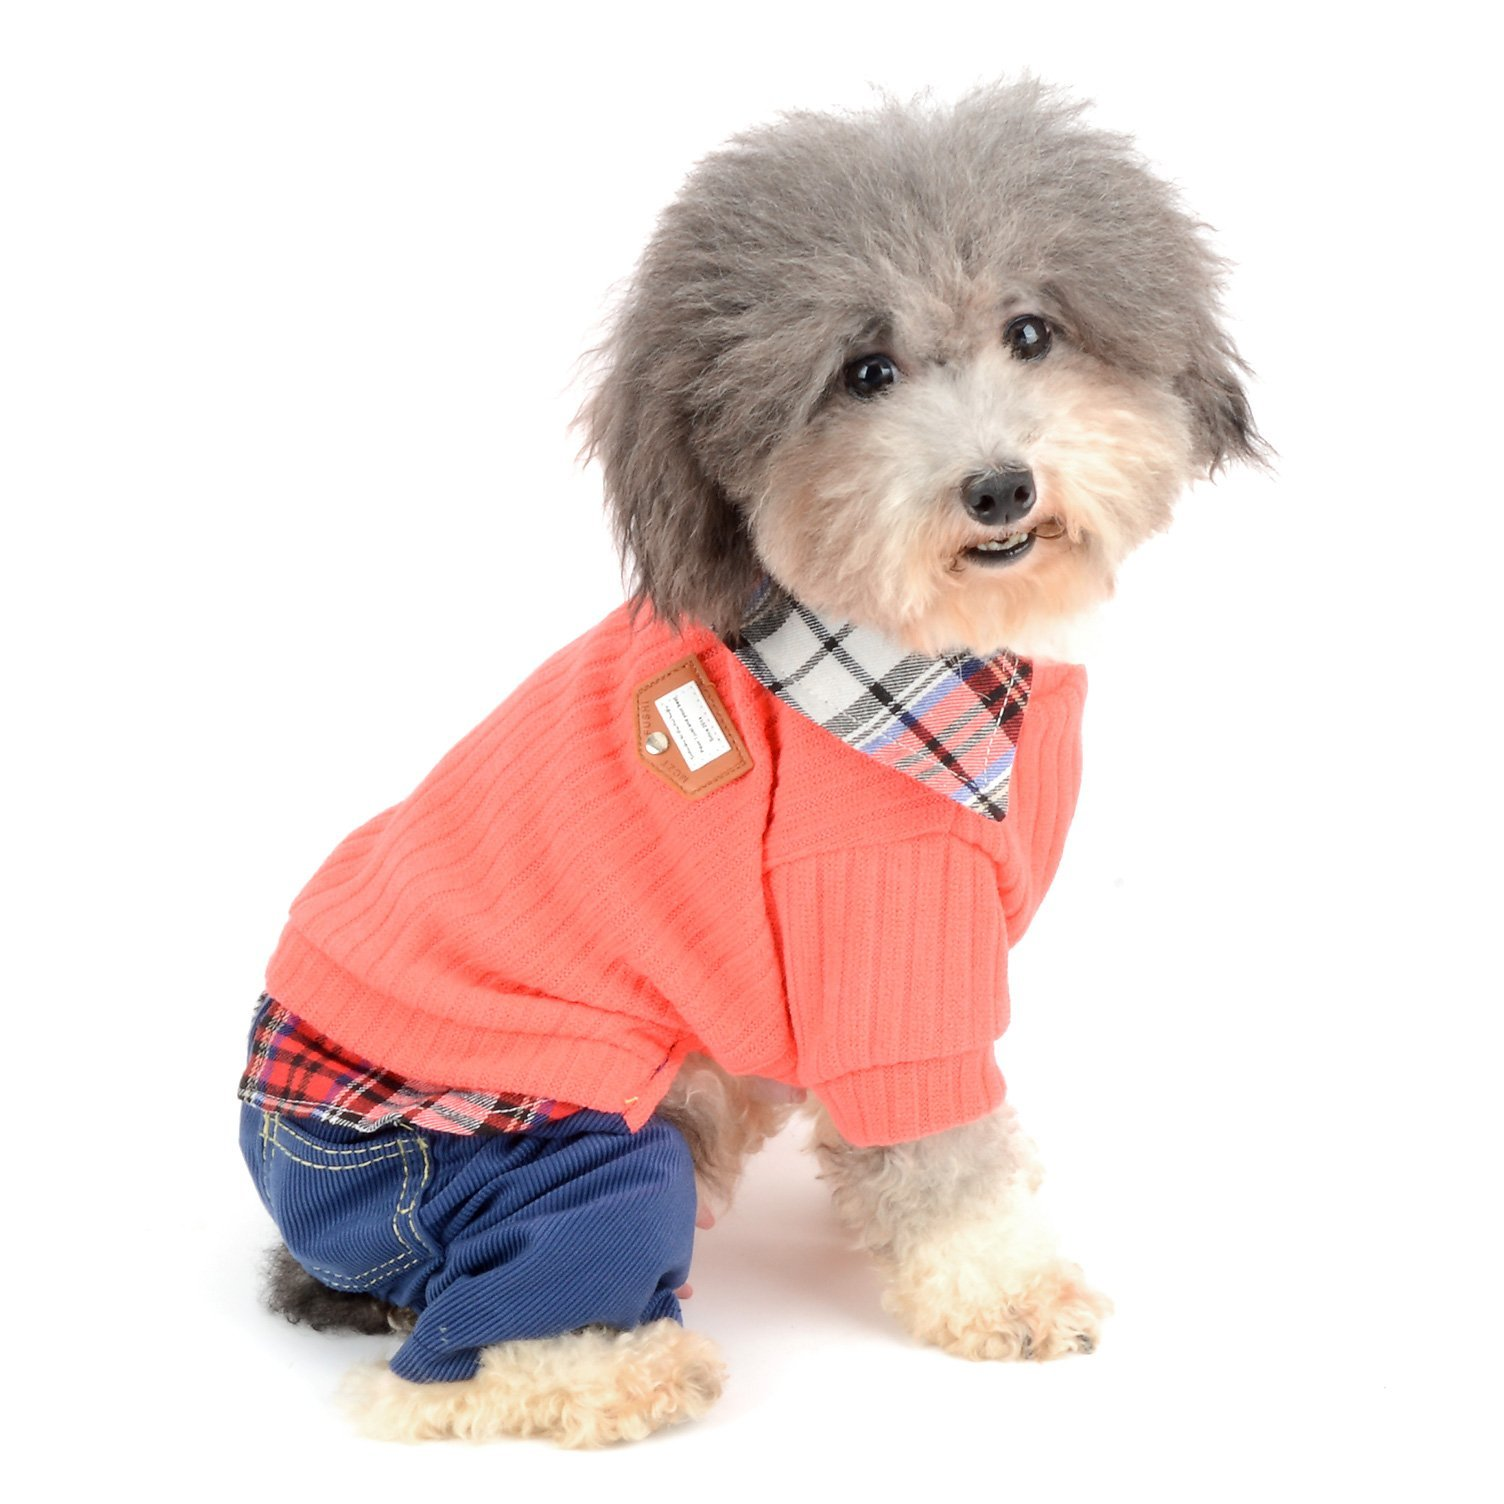 Ranphy Small Dog Sweater with Plaid Shirt Collar, Warm Dog Outfits, Student Style Pet Jumper with Pants, Puppy Knitwear Apparel Girls Boys for Autumn Winter Pink Size XL